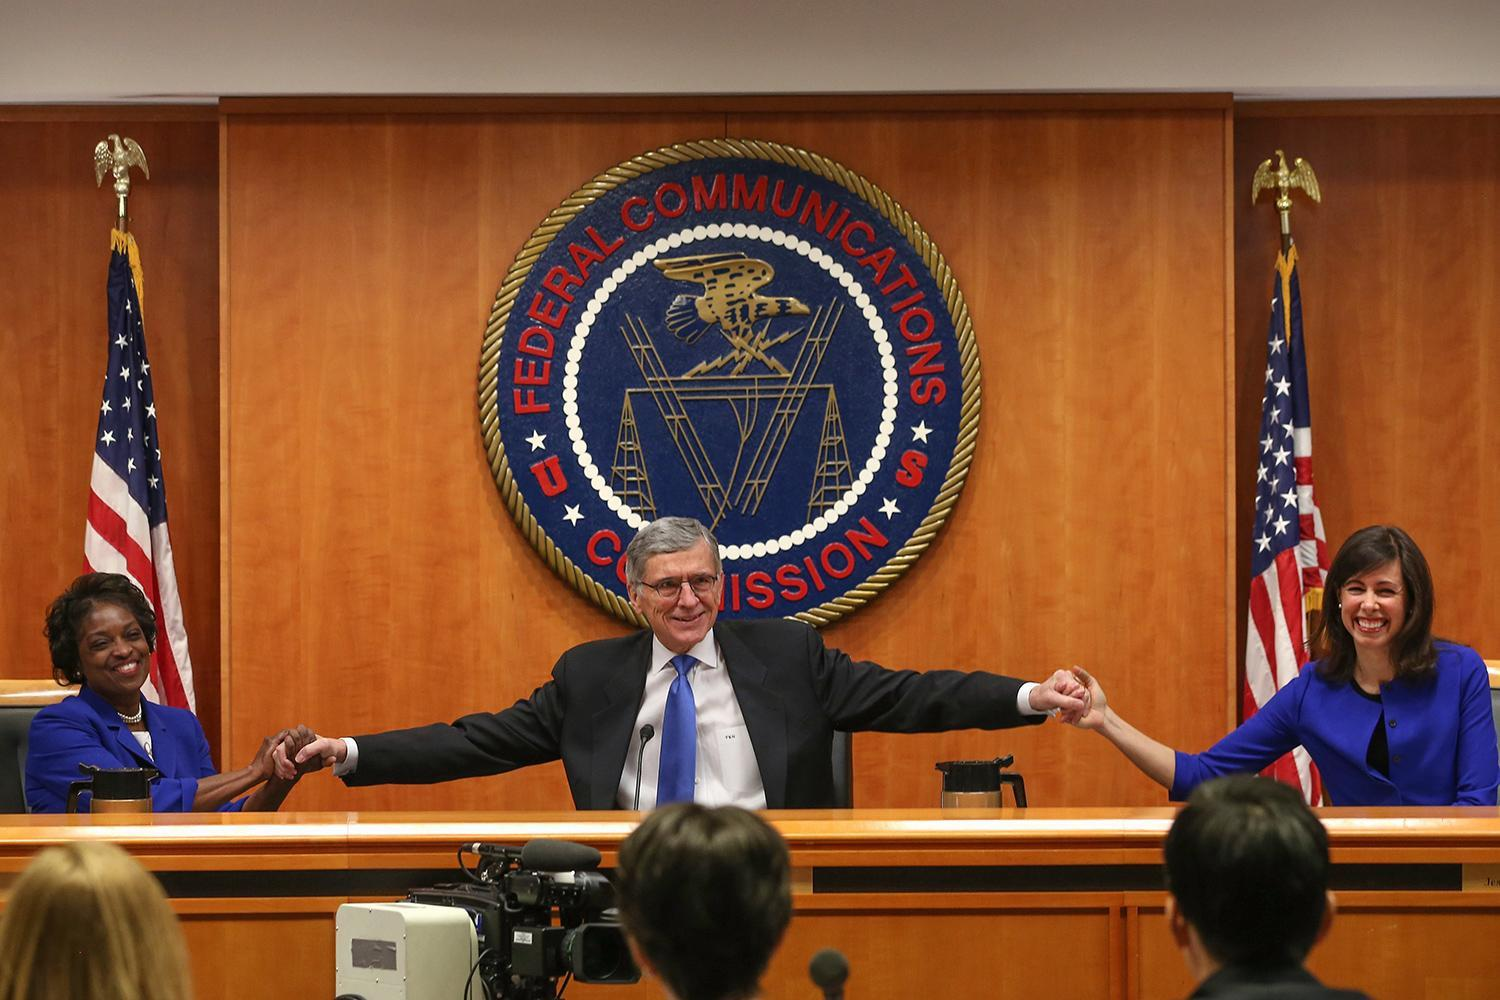 FCC concludes that AT&T and Verizon's policies violate net neutrality